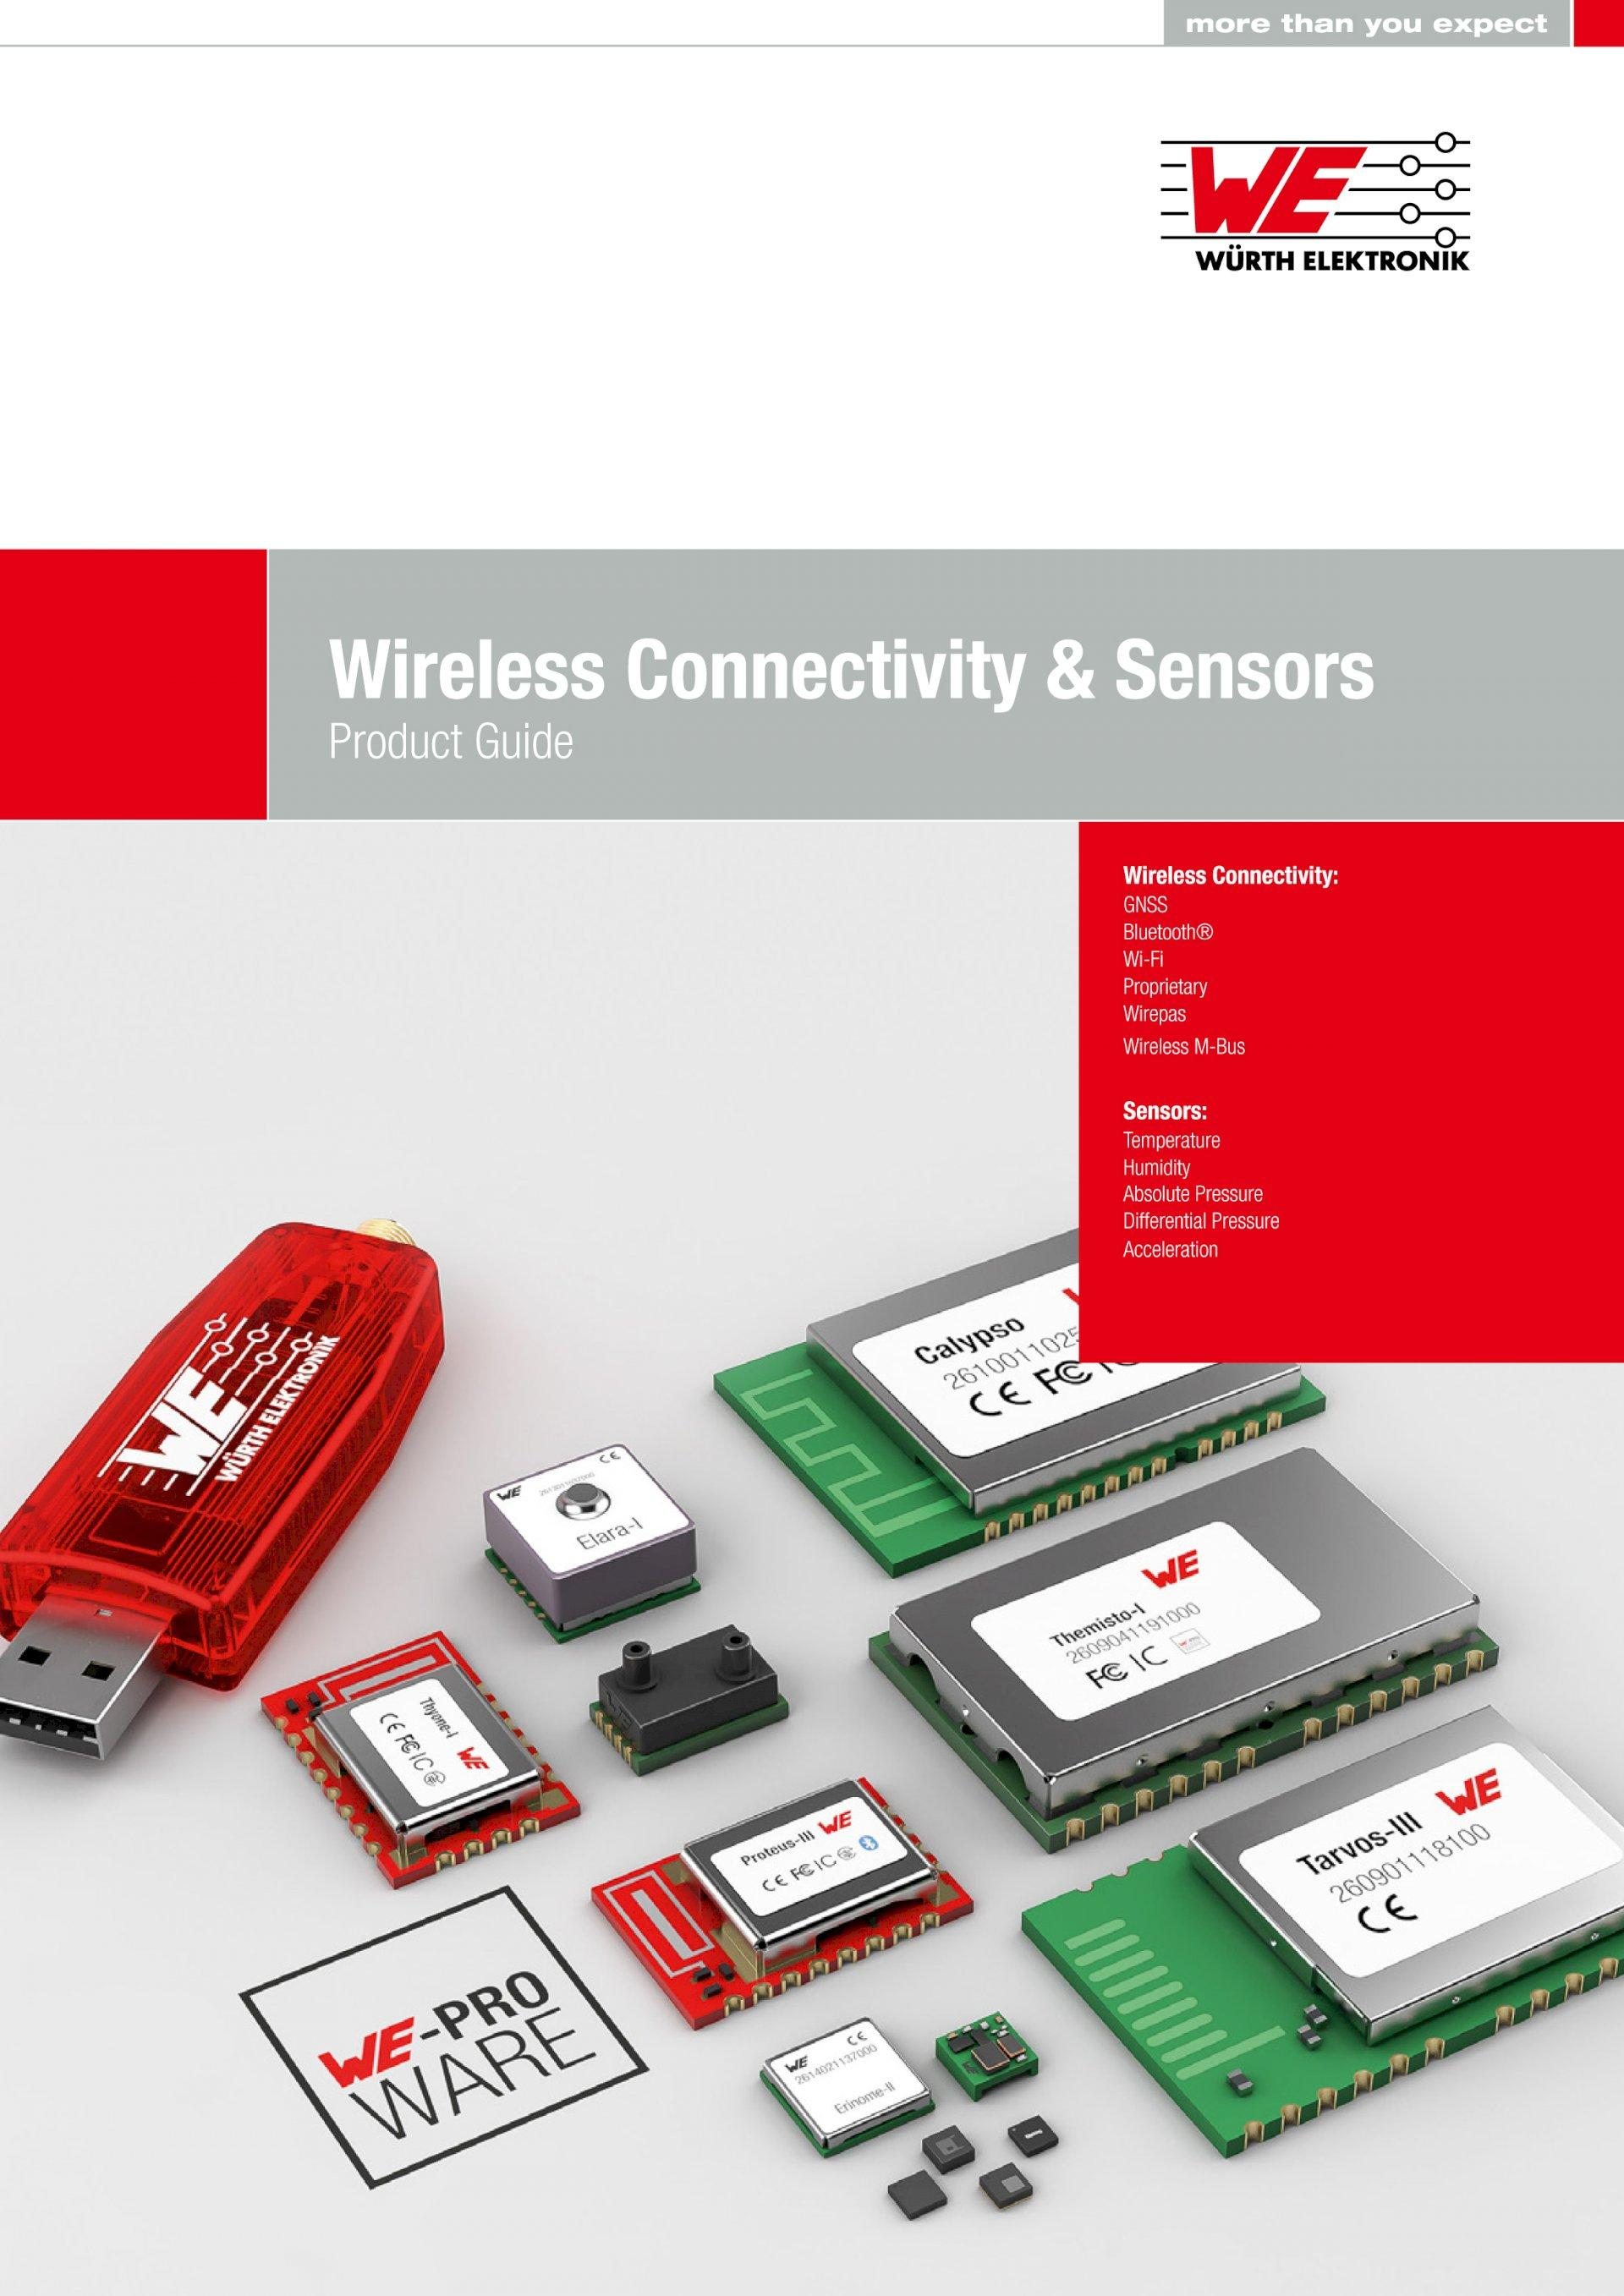 Würth Elektronik presents its Wireless Connectivity & Sensors Product Guide